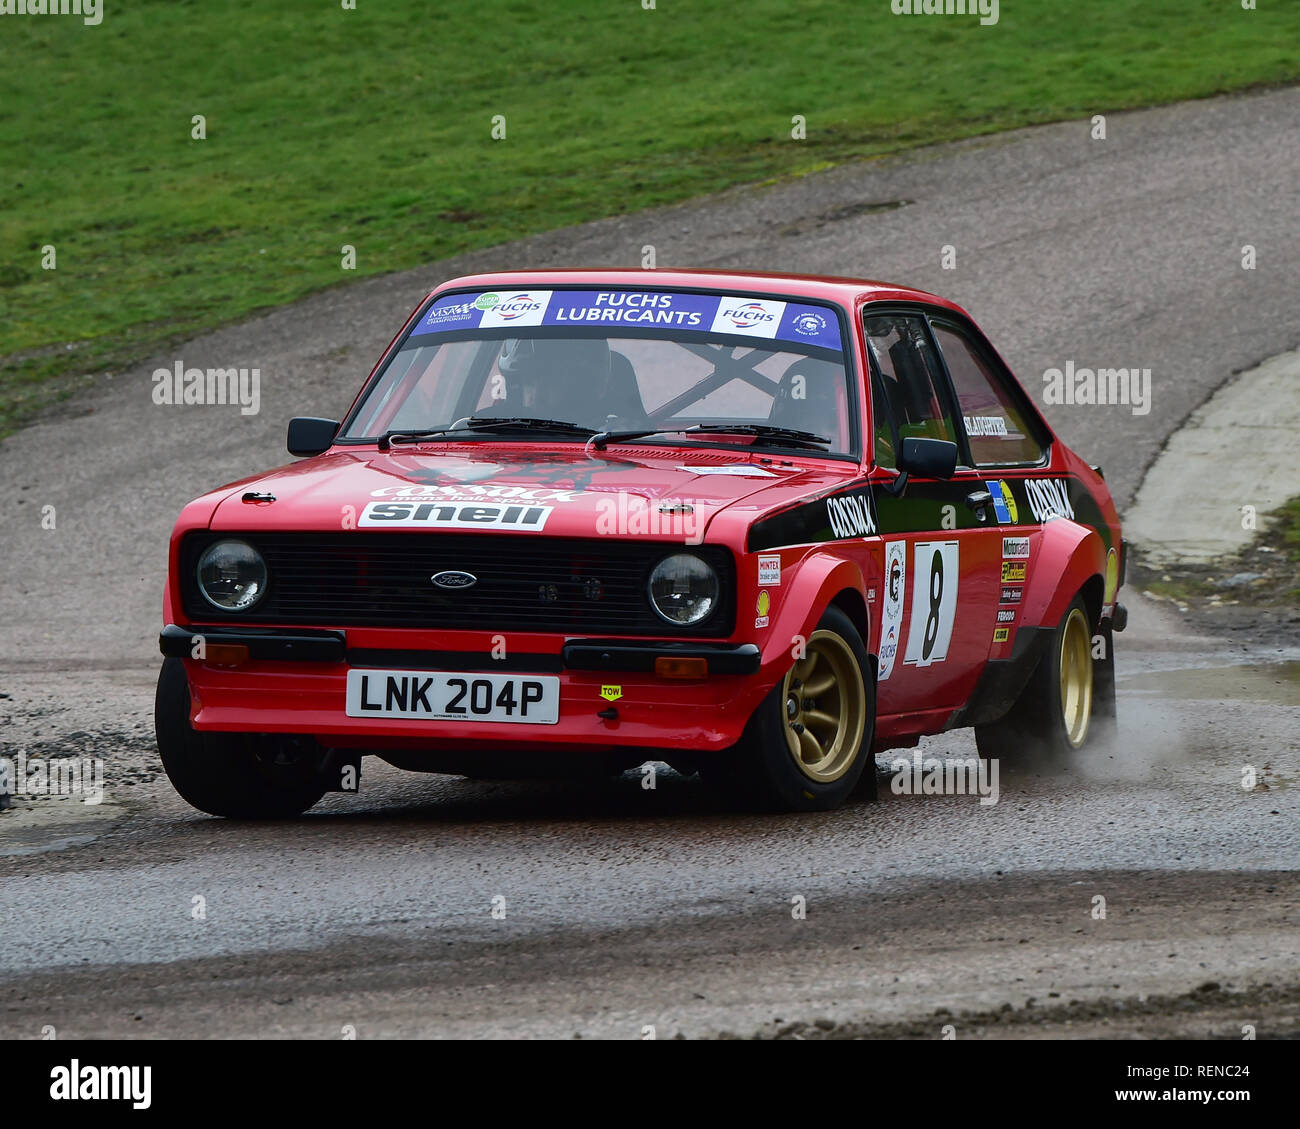 james schlachtung sarah flynn ford escort rs 1800 rallye mgj stadien chelmsford motor